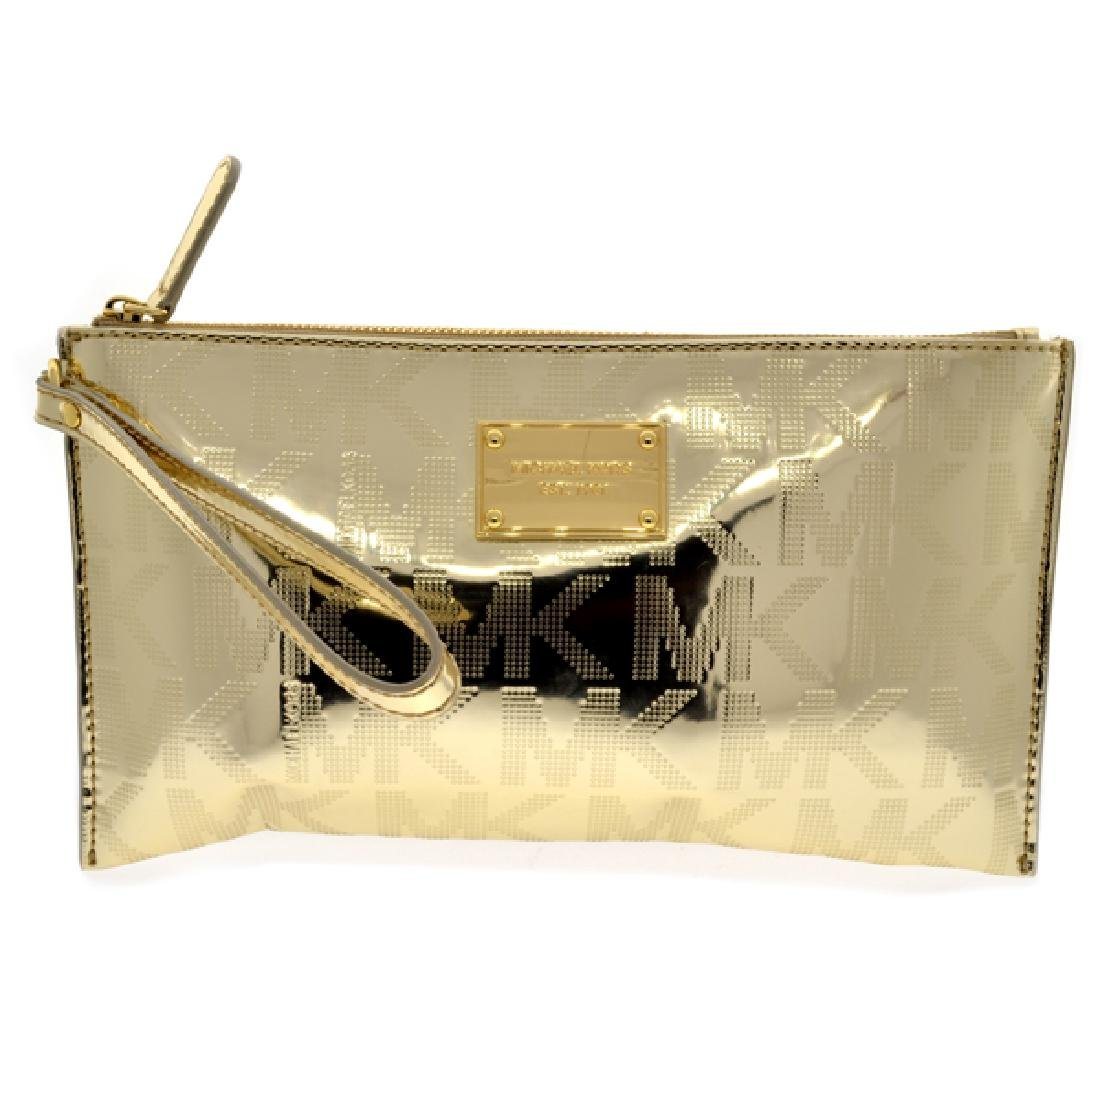 ^Brand New Michael Kors Jet Set Mirror Metallic Large